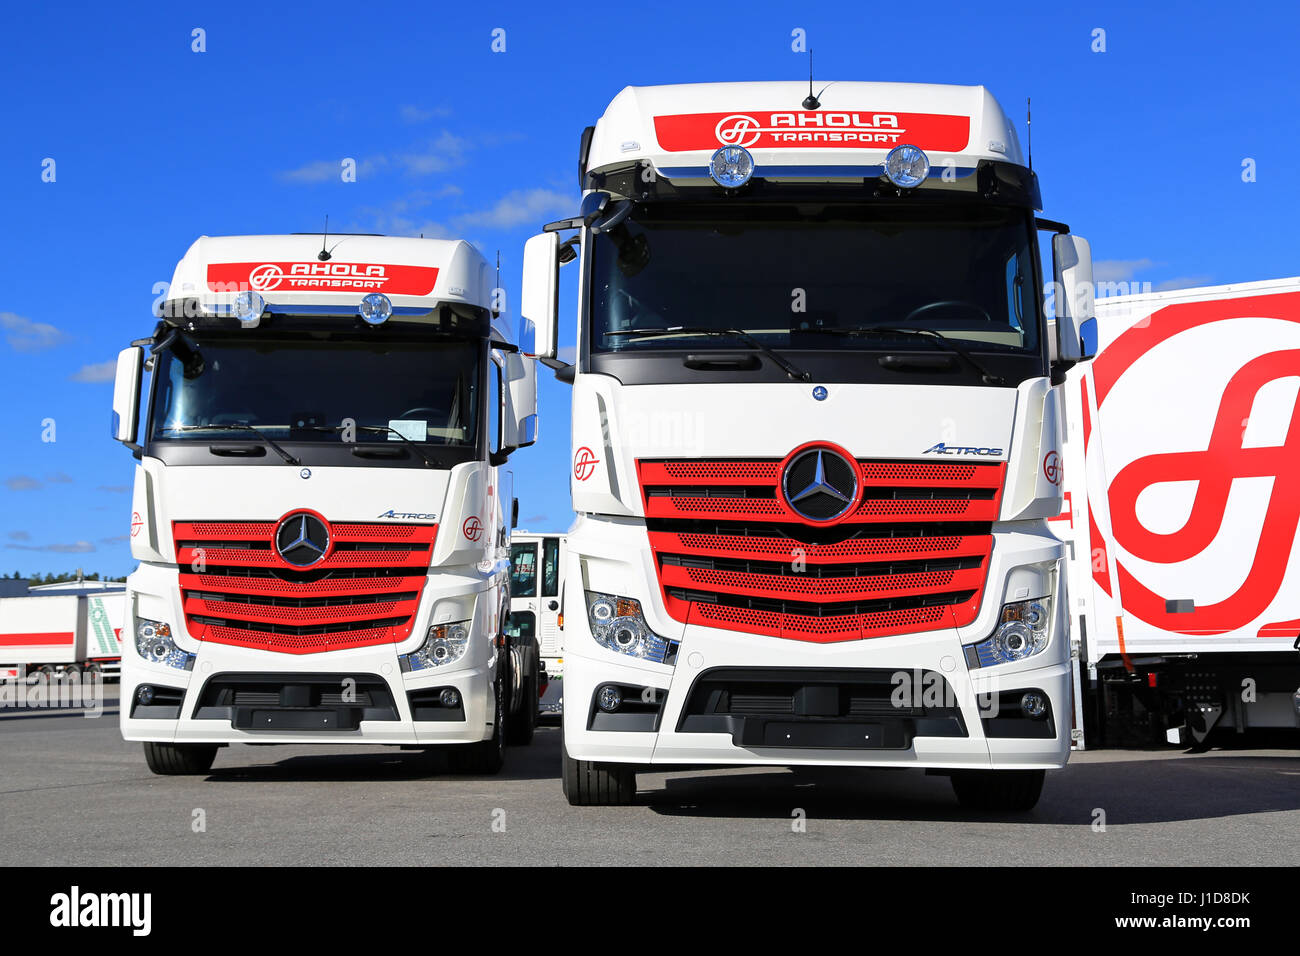 NAANTALI, FINLAND - SEPTEMBER 16, 2016: Mercedes-Benz Actros 2551 cargo  trucks of the new visual identity of Ahola Transport on display on the  company